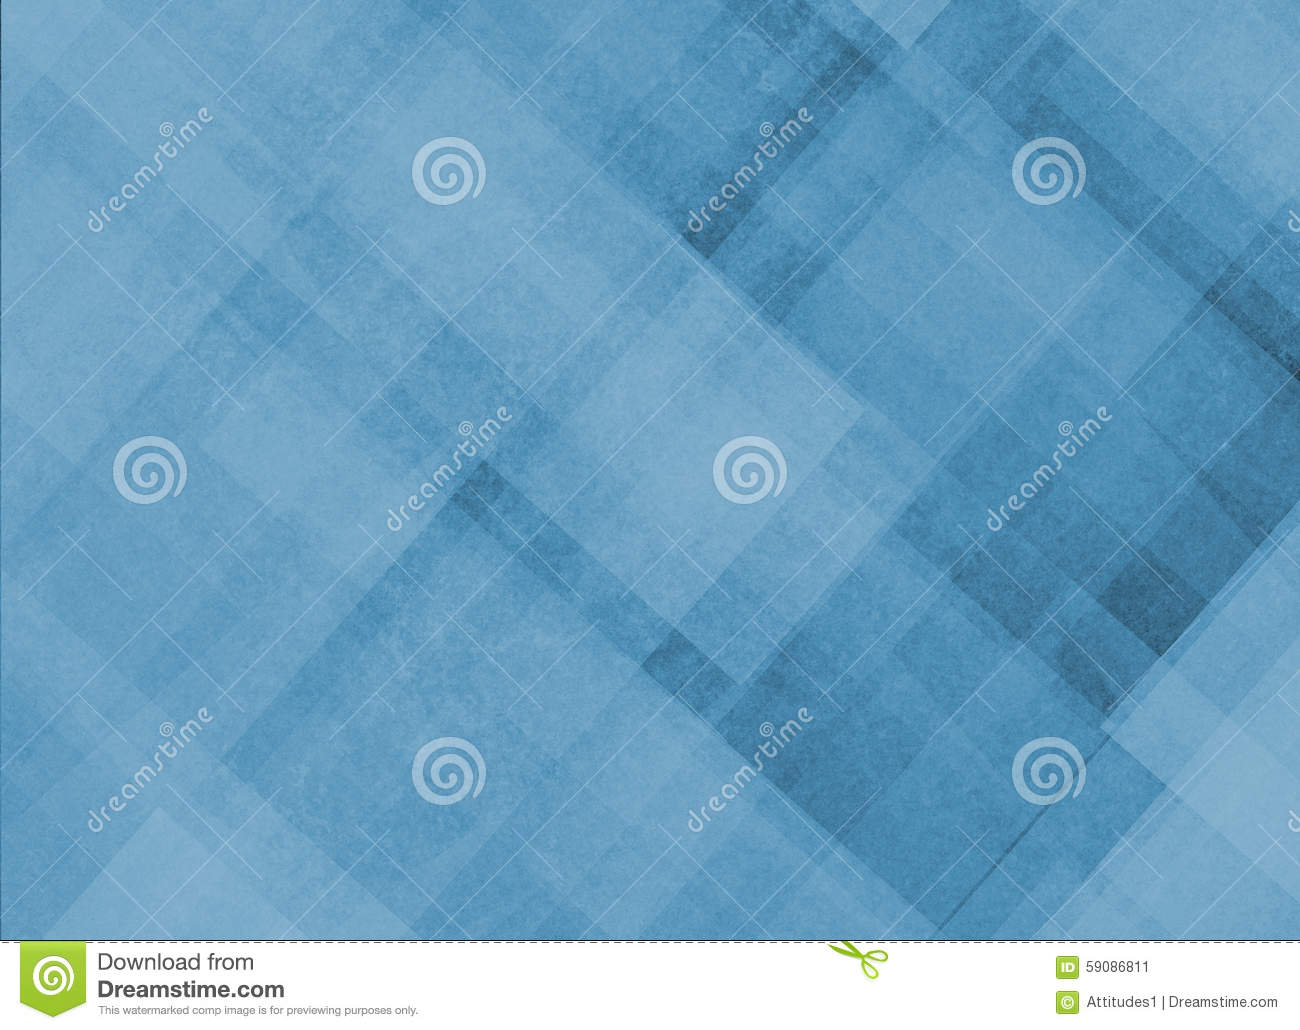 3d hexagon pattern stock vector image 54997696 - Abstract